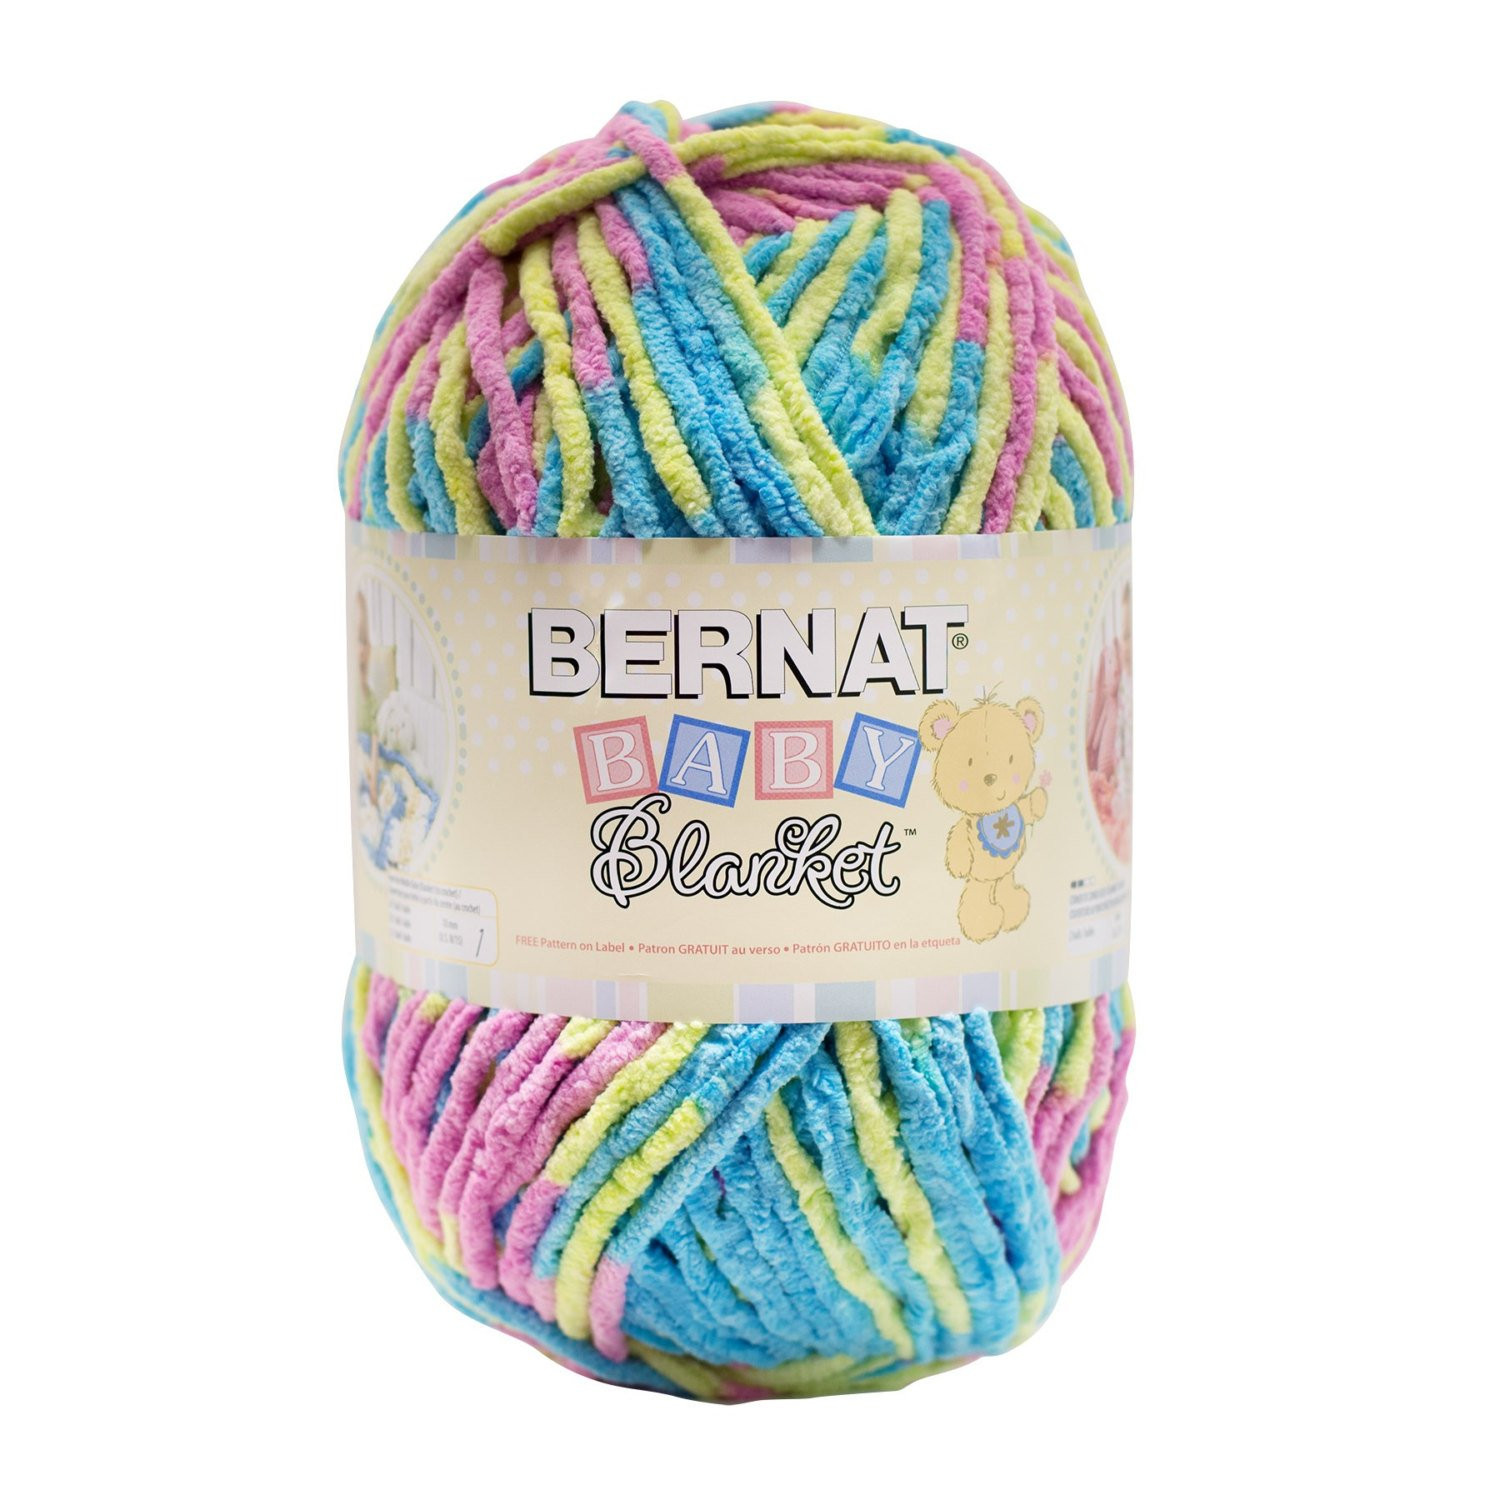 Bernat Baby Blanket Yarn Lovely Bernat Baby Blanket Yarn In Jelly Beans 300 Gram Of Delightful 42 Models Bernat Baby Blanket Yarn